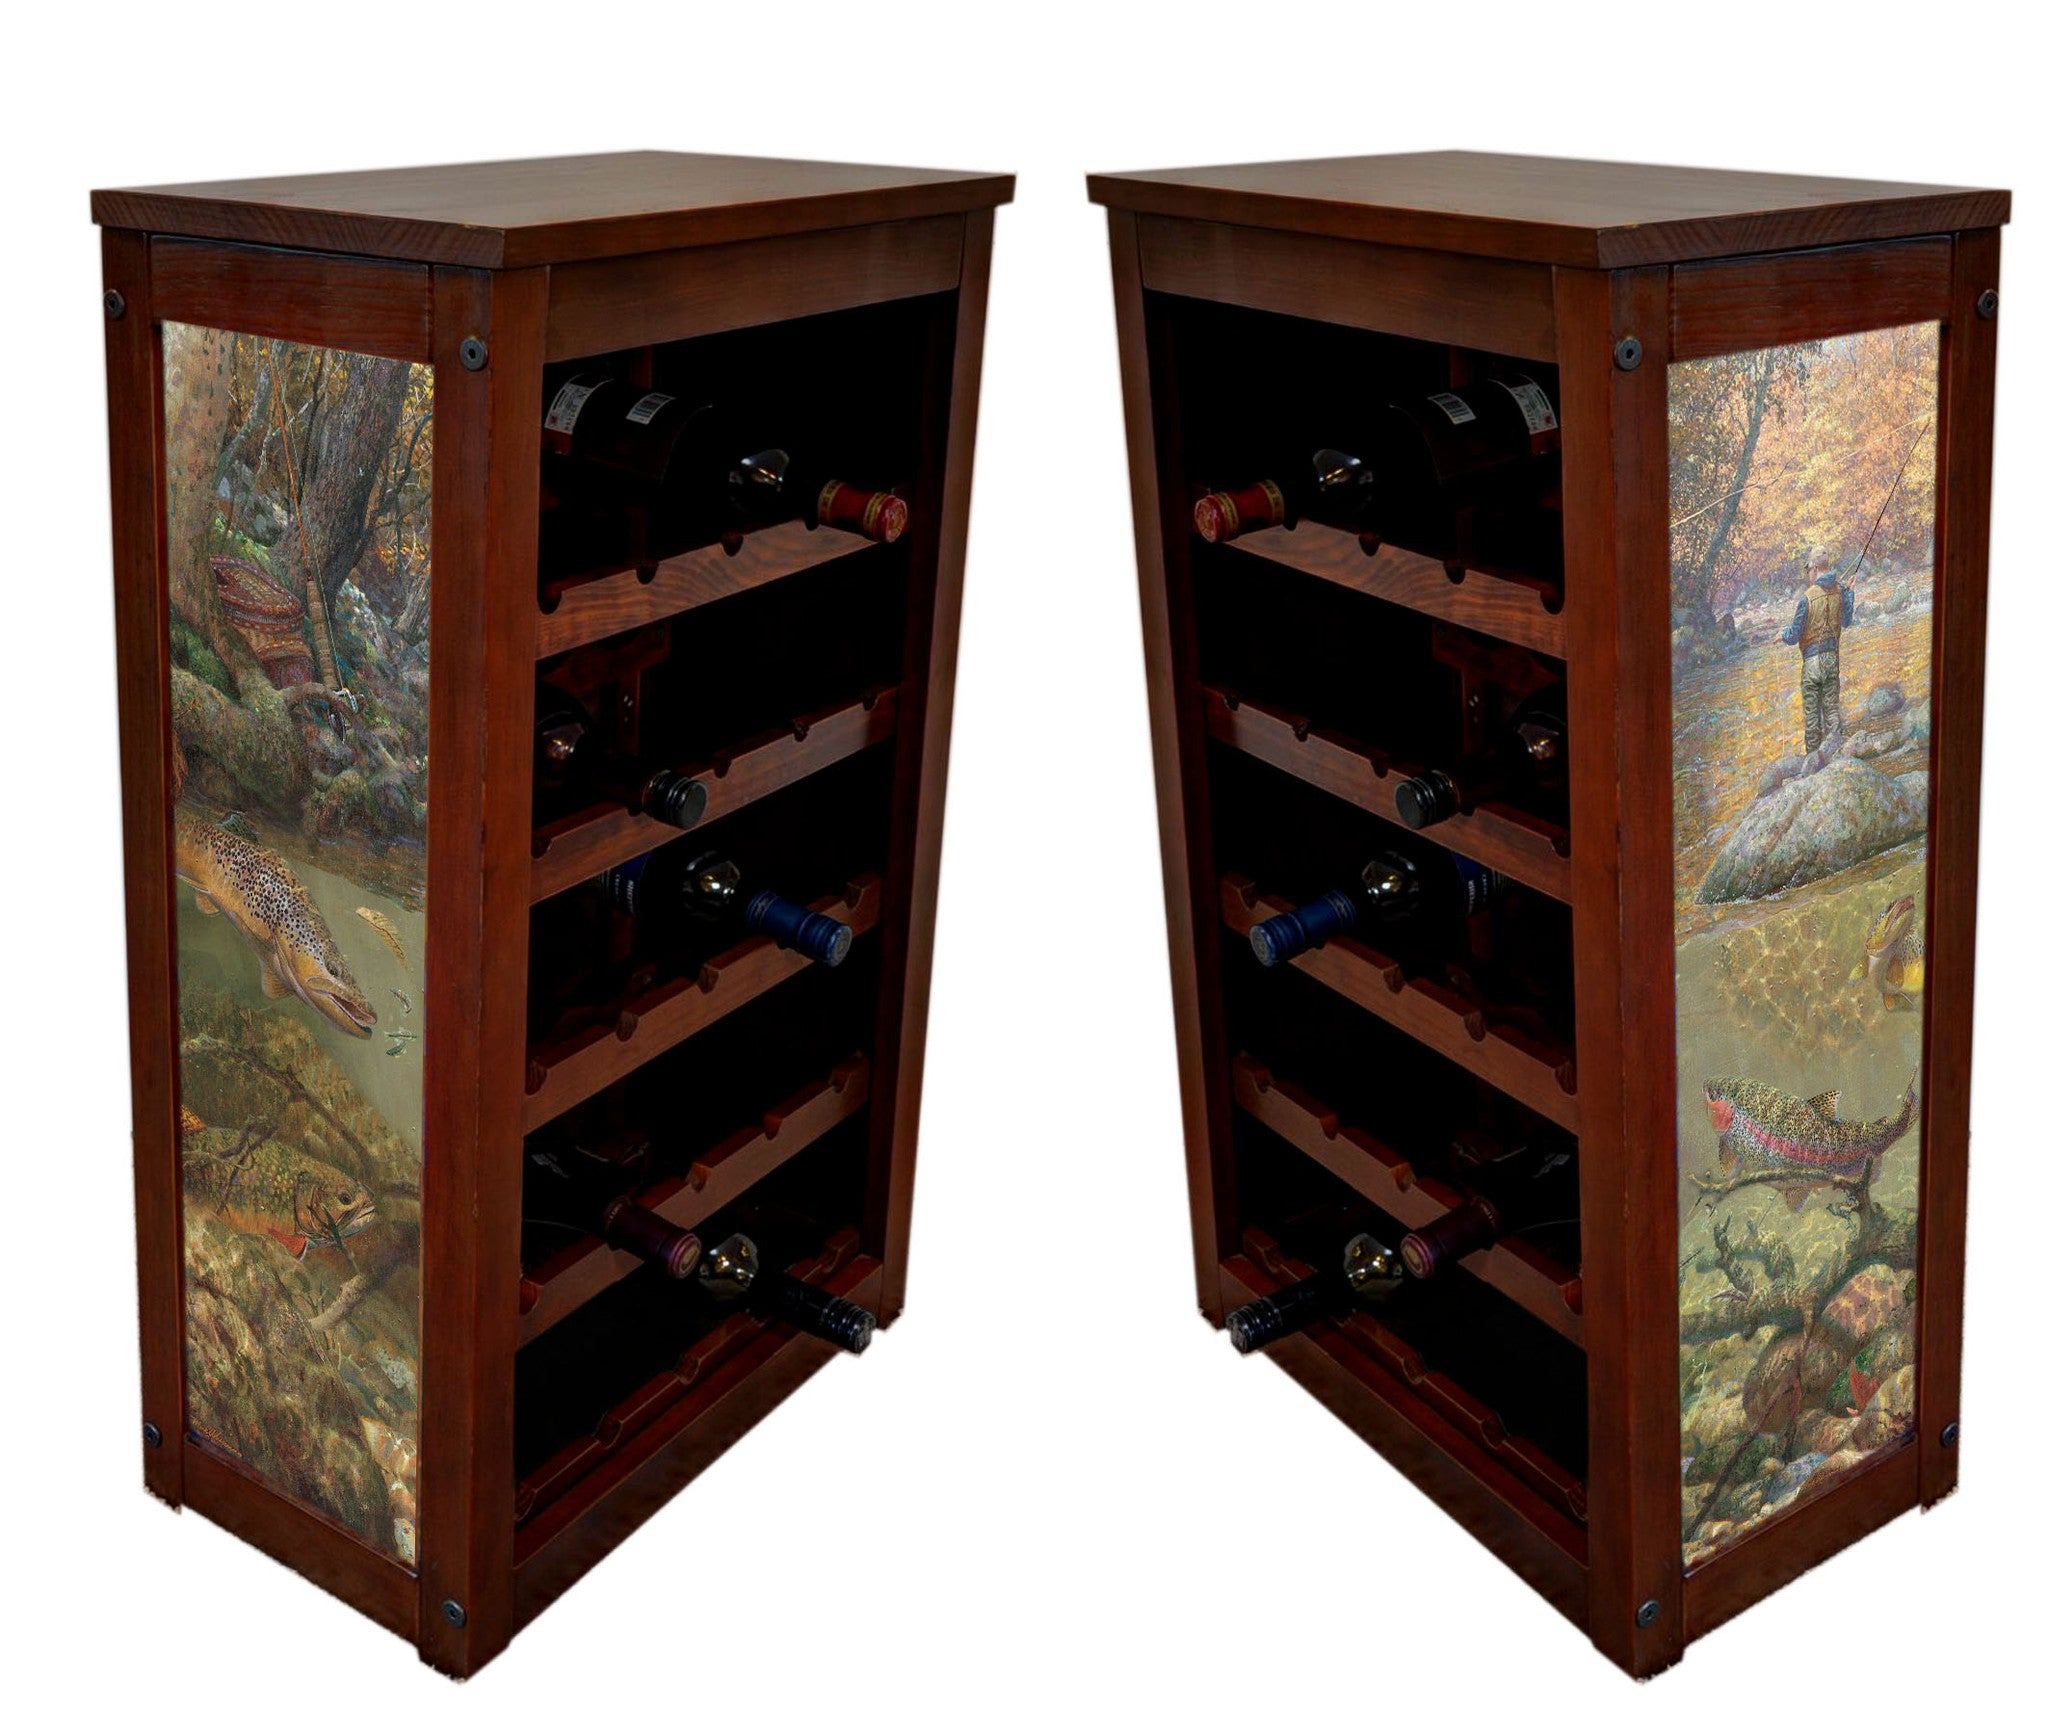 Fly fishing Wine rack with Autumn Dream Day by Mark Sussino